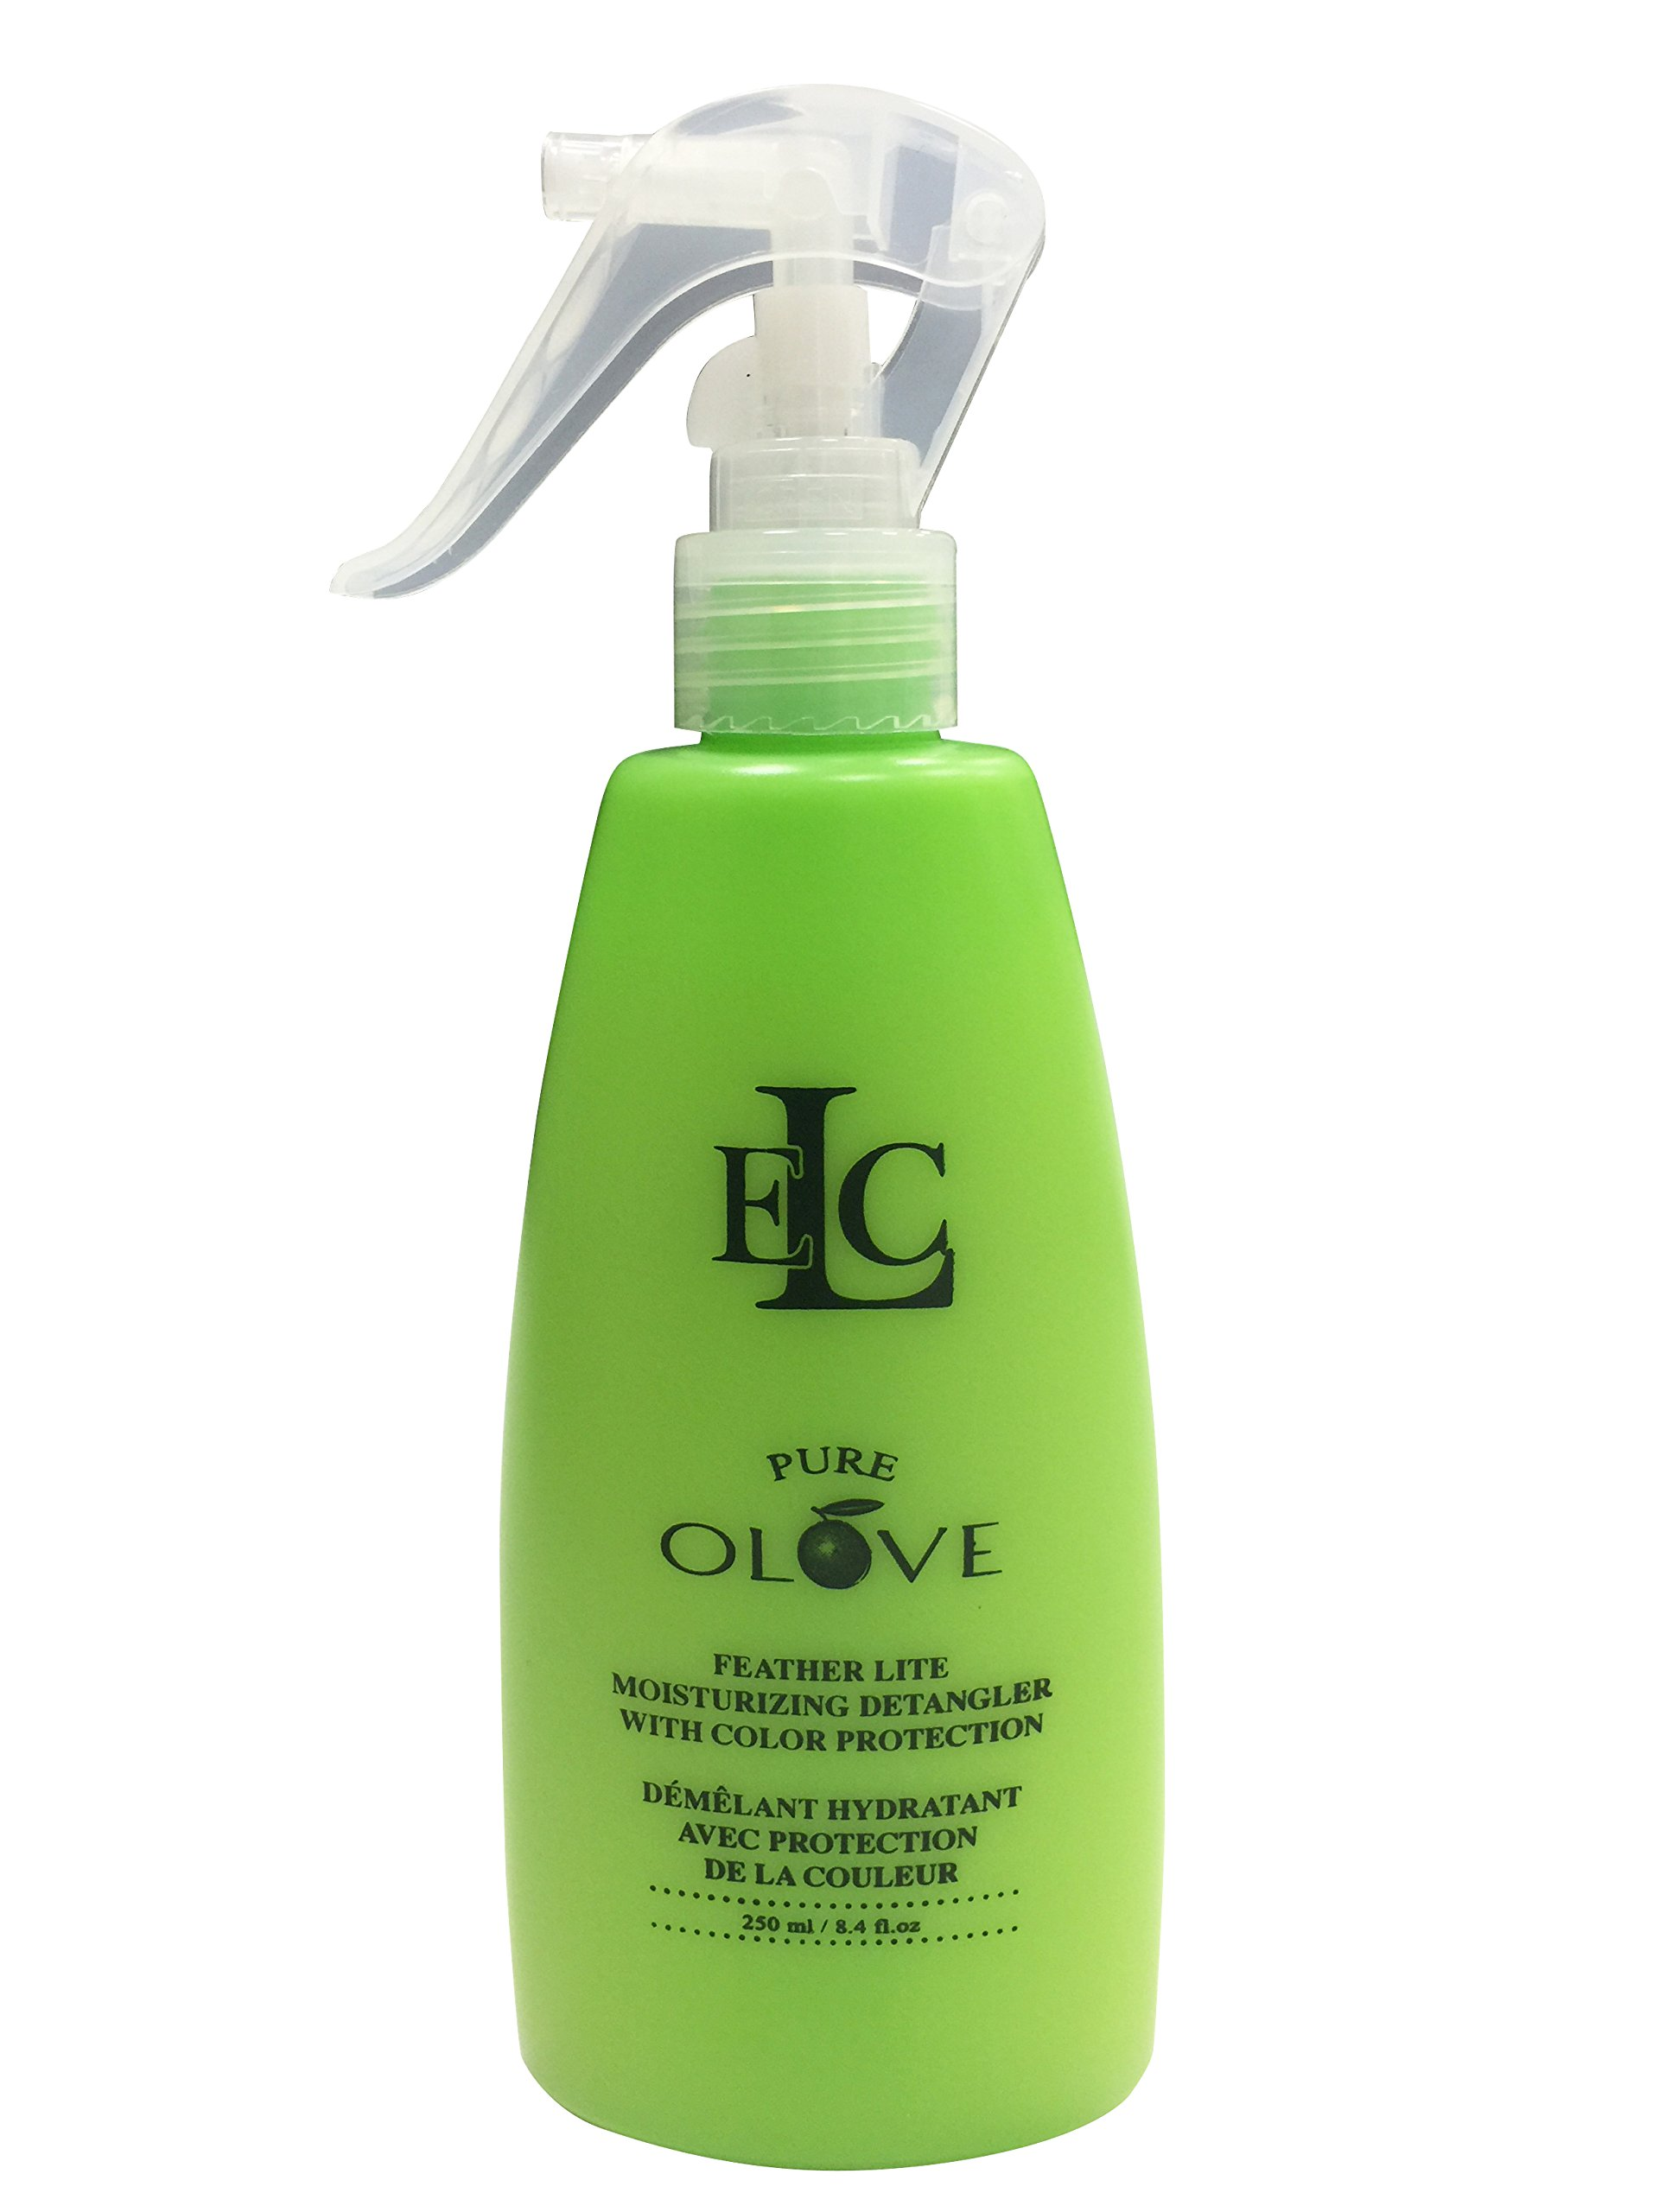 ELC Dao of Hair Pure Olove Feather Lite Moisturizing Detangler with Color Protection - 8.4 Fl Oz / 250 ml